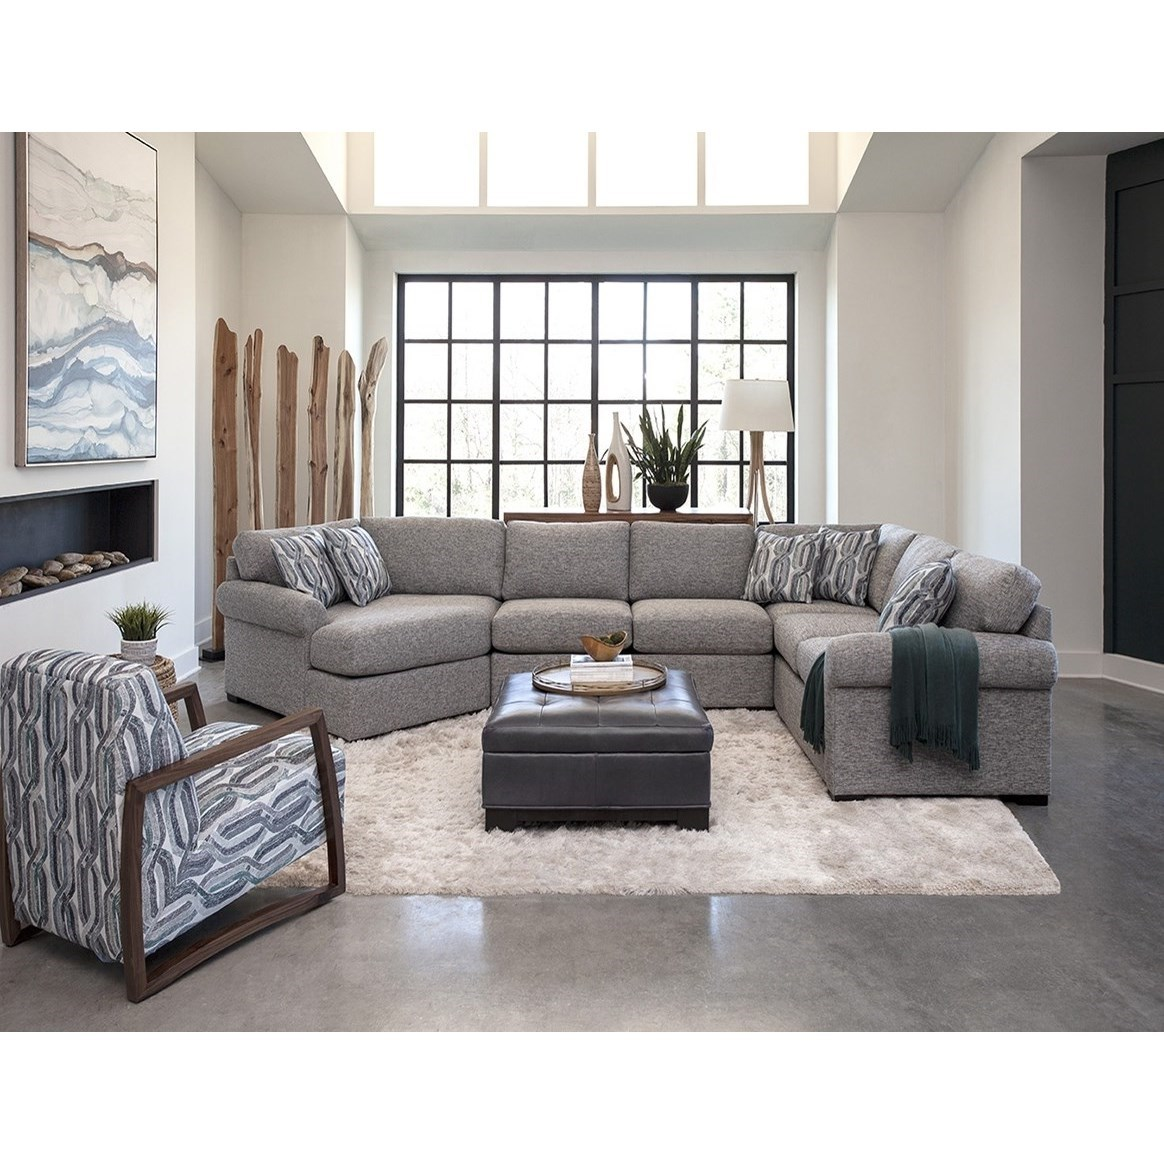 Fletcher 3-Piece Sectional with Left-Facing Cuddler at Williams & Kay